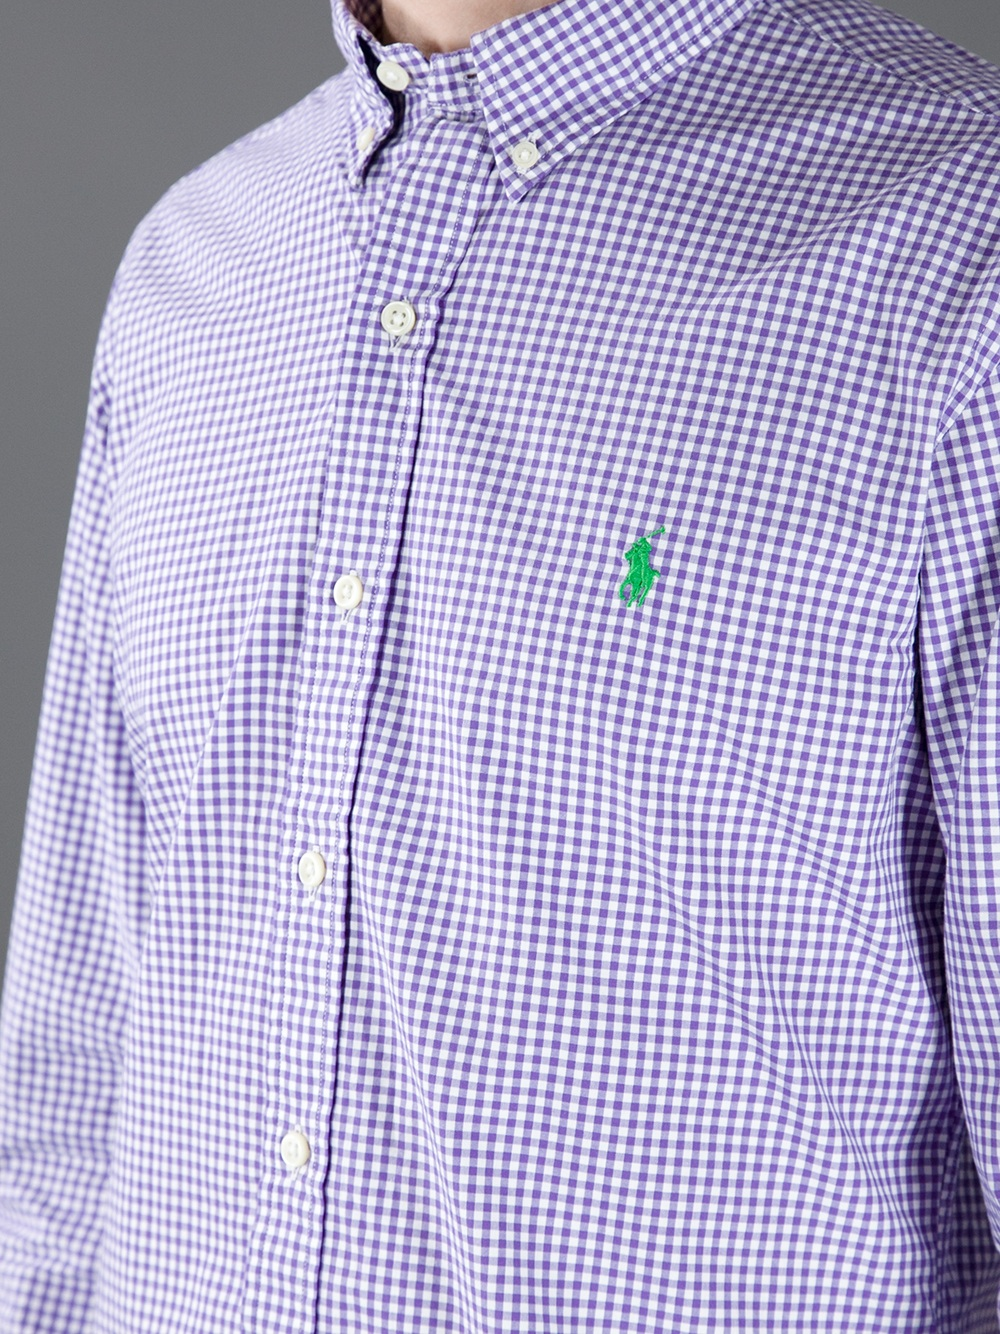 Lyst polo ralph lauren gingham button down shirt in for Men s purple gingham shirt